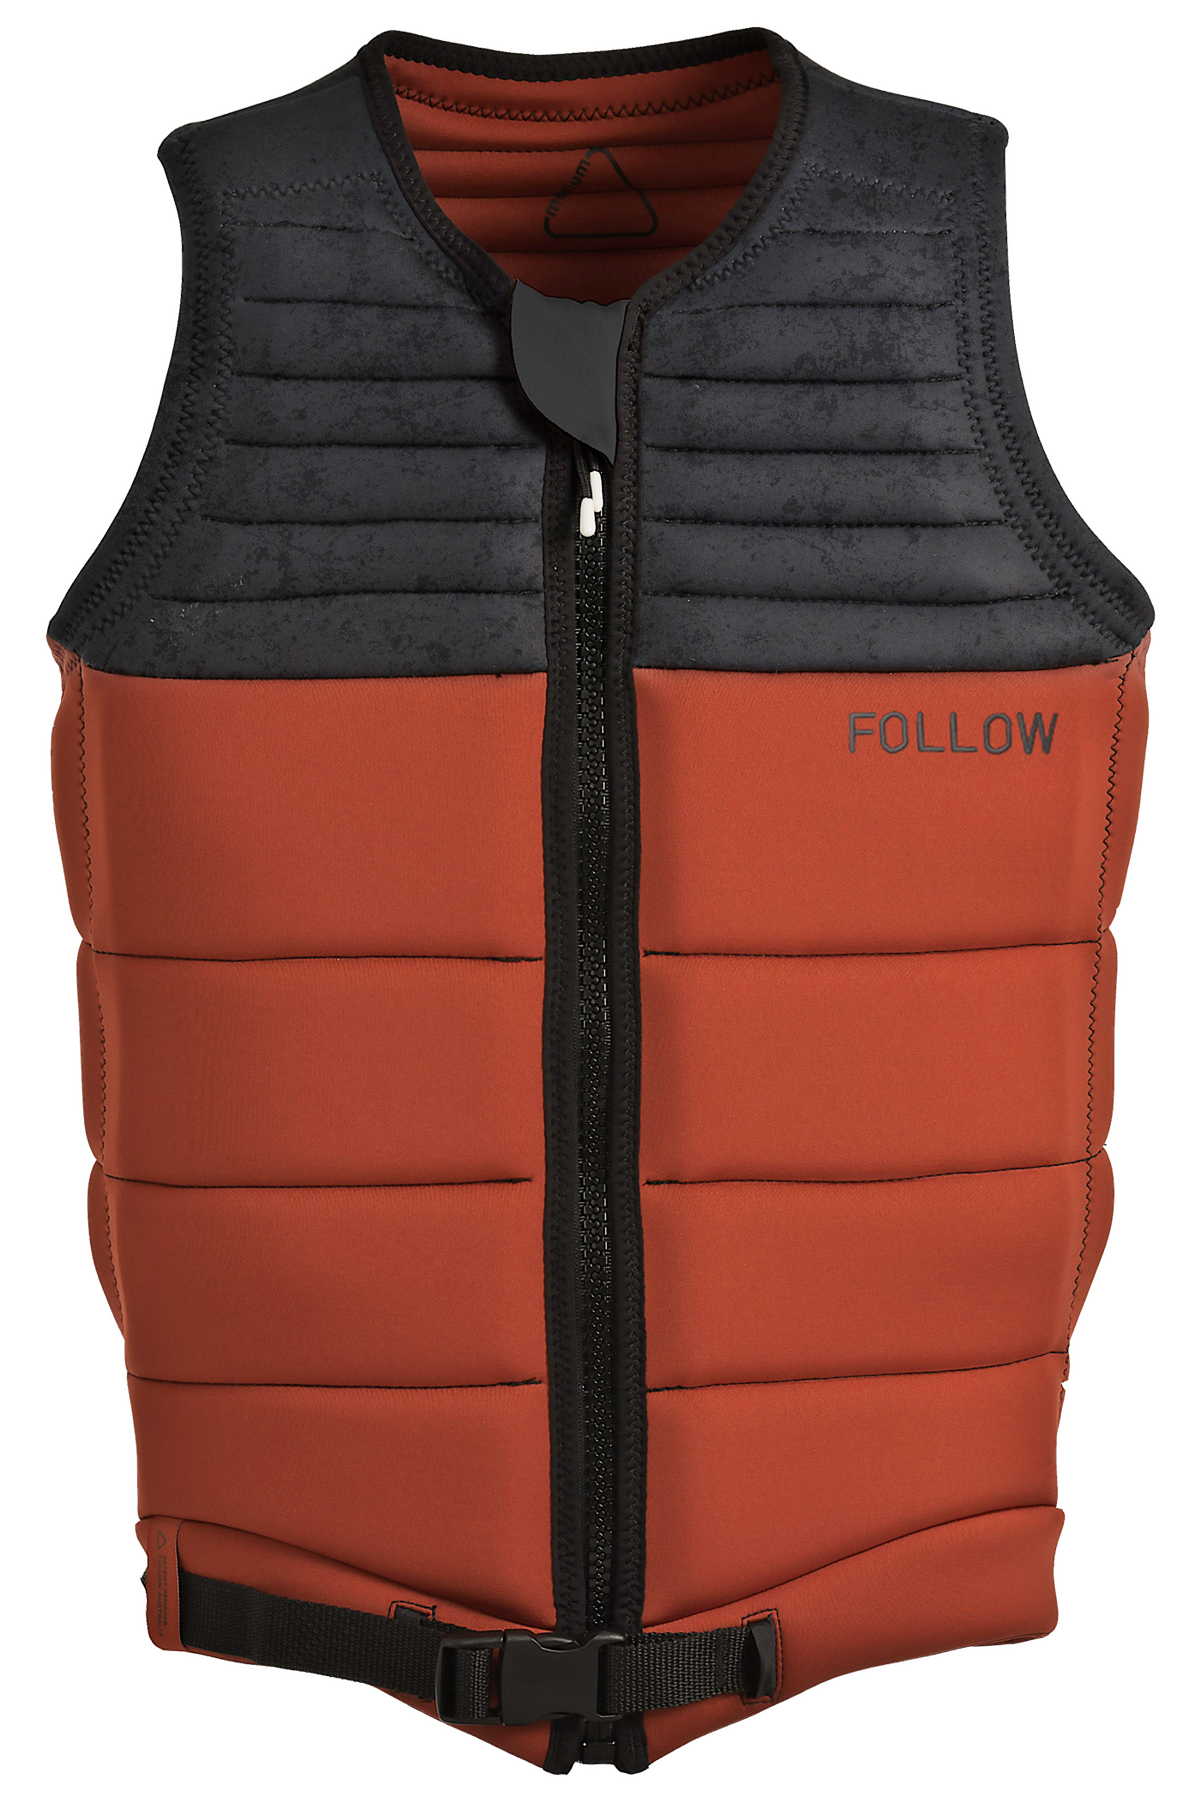 BEACON CODY IMPACT VEST - RUST FOLLOW 2019